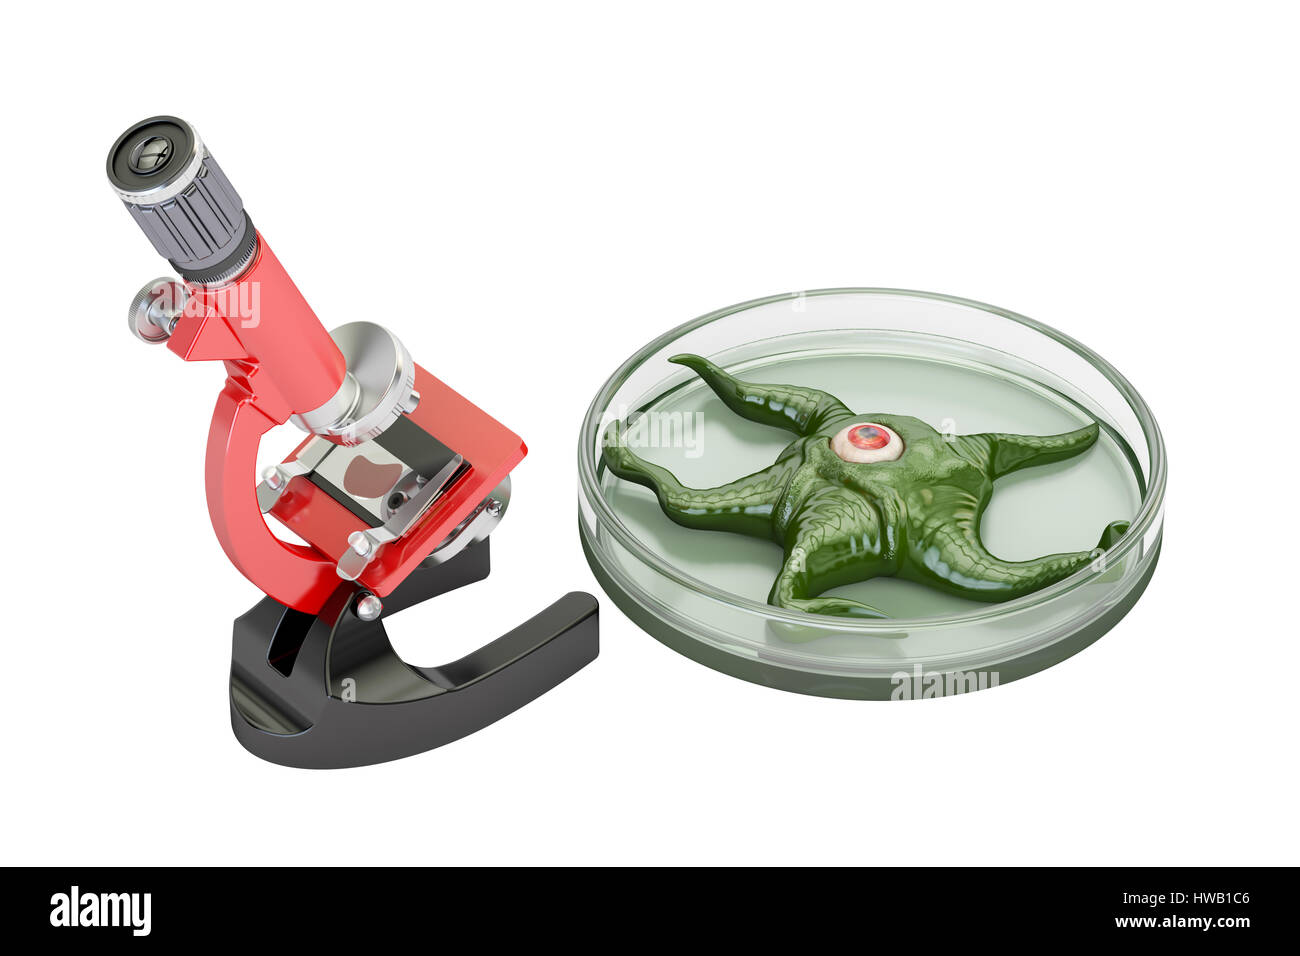 laboratory microscope with living organism, scientific experiments and discoveries concept. 3D rendering - Stock Image